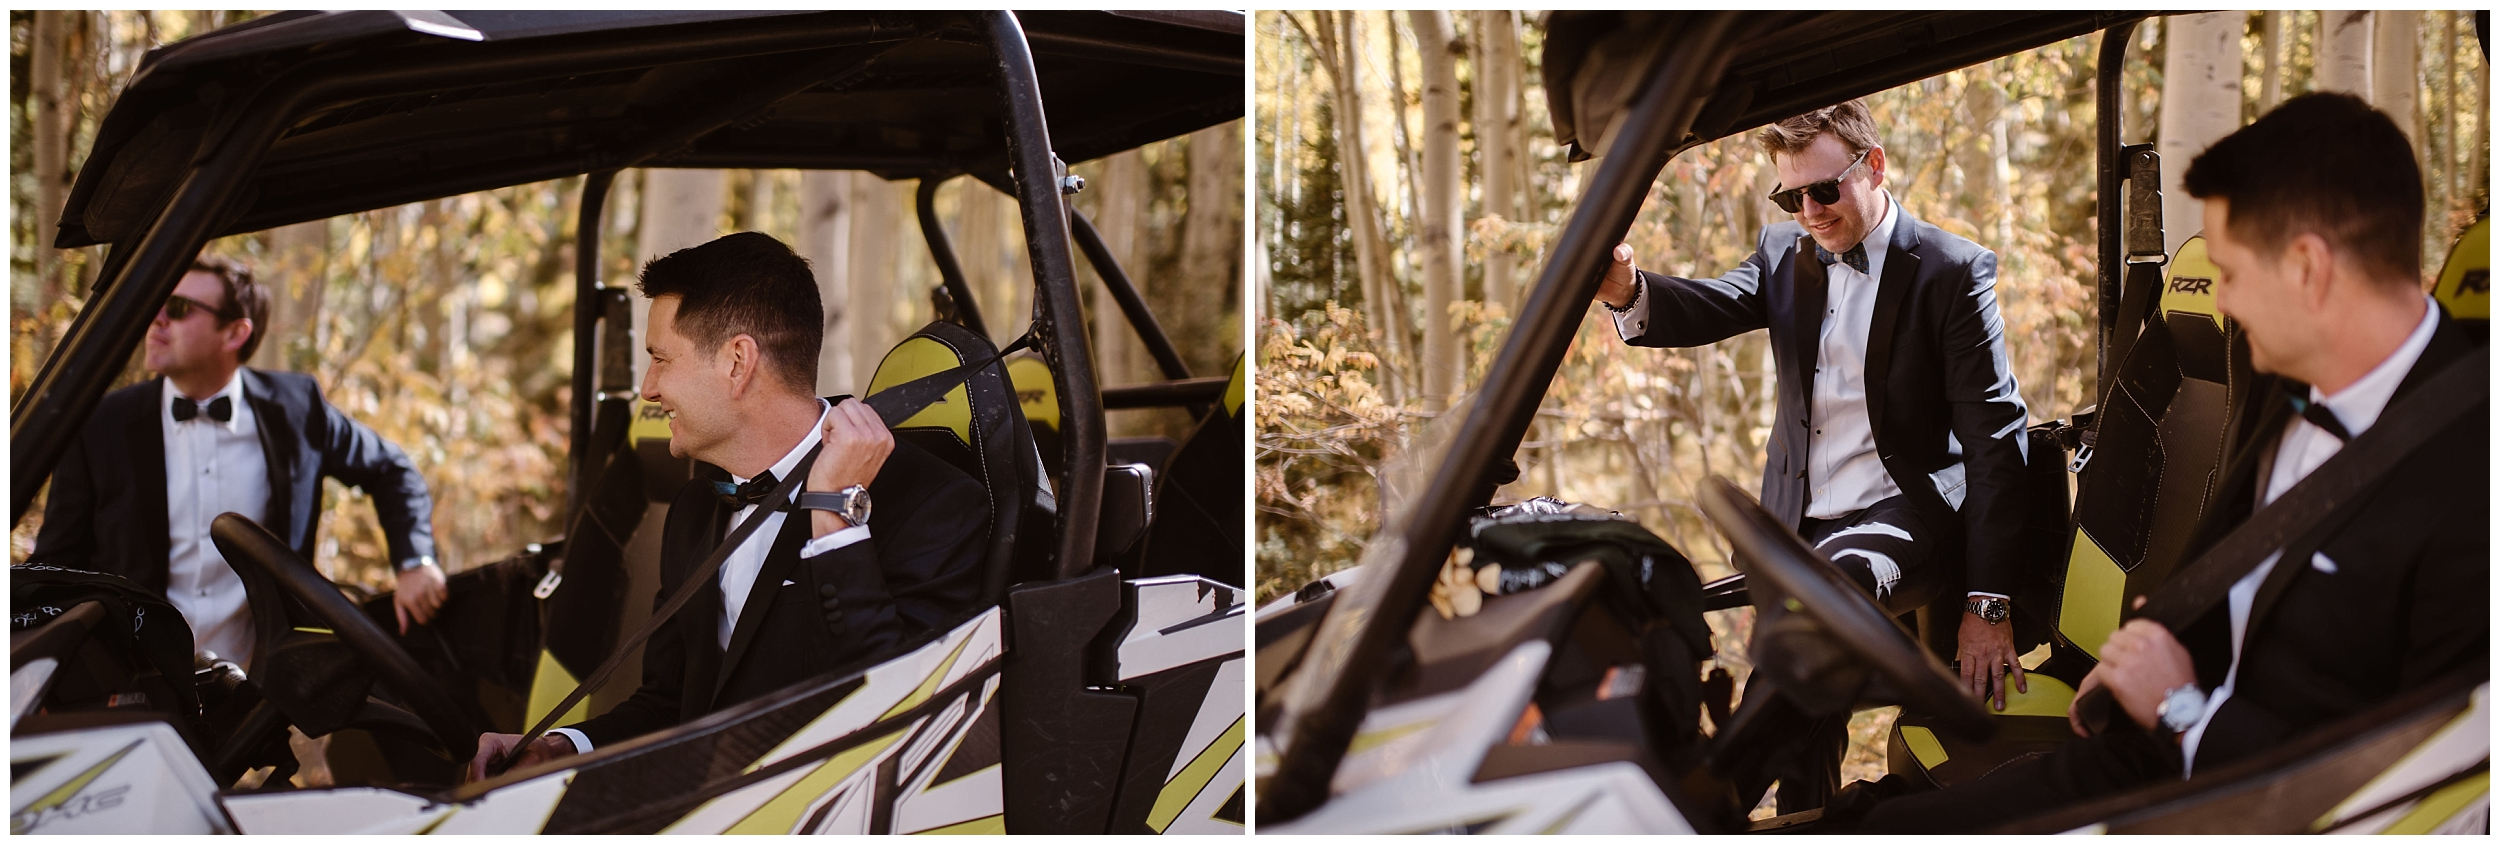 Brian and Ernie climb back into their side-by-side vehicle to make their way toward their off-road wedding location. Their 4x4 elopement was one of their unique eloping ideas they absolutely wanted to include in their elopement wedding.